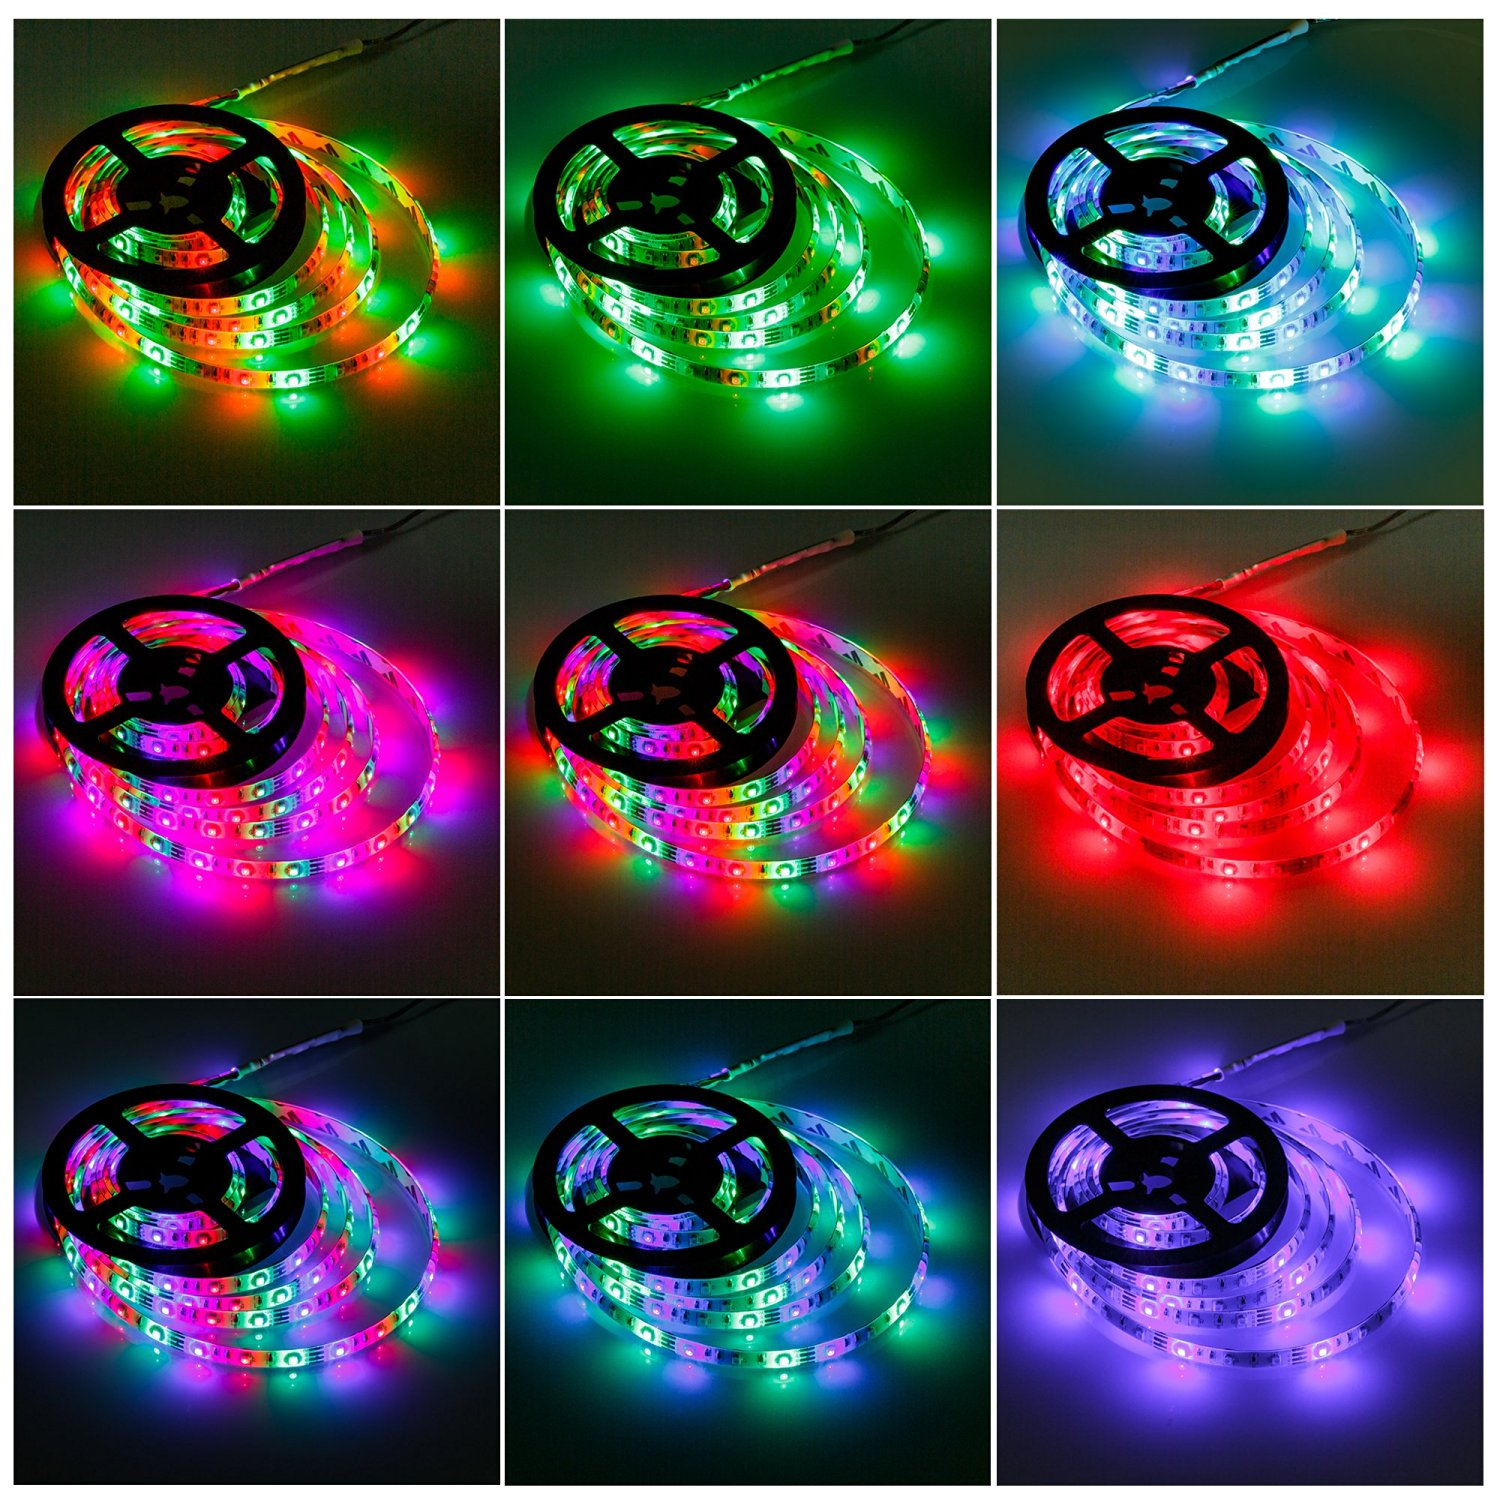 Geekeep Led Strip Lights Battery Powered Waterproof Rope Lights LED Light Strips SMD 3528 LED Ribbon Light (2M/6.56ft, RGB)